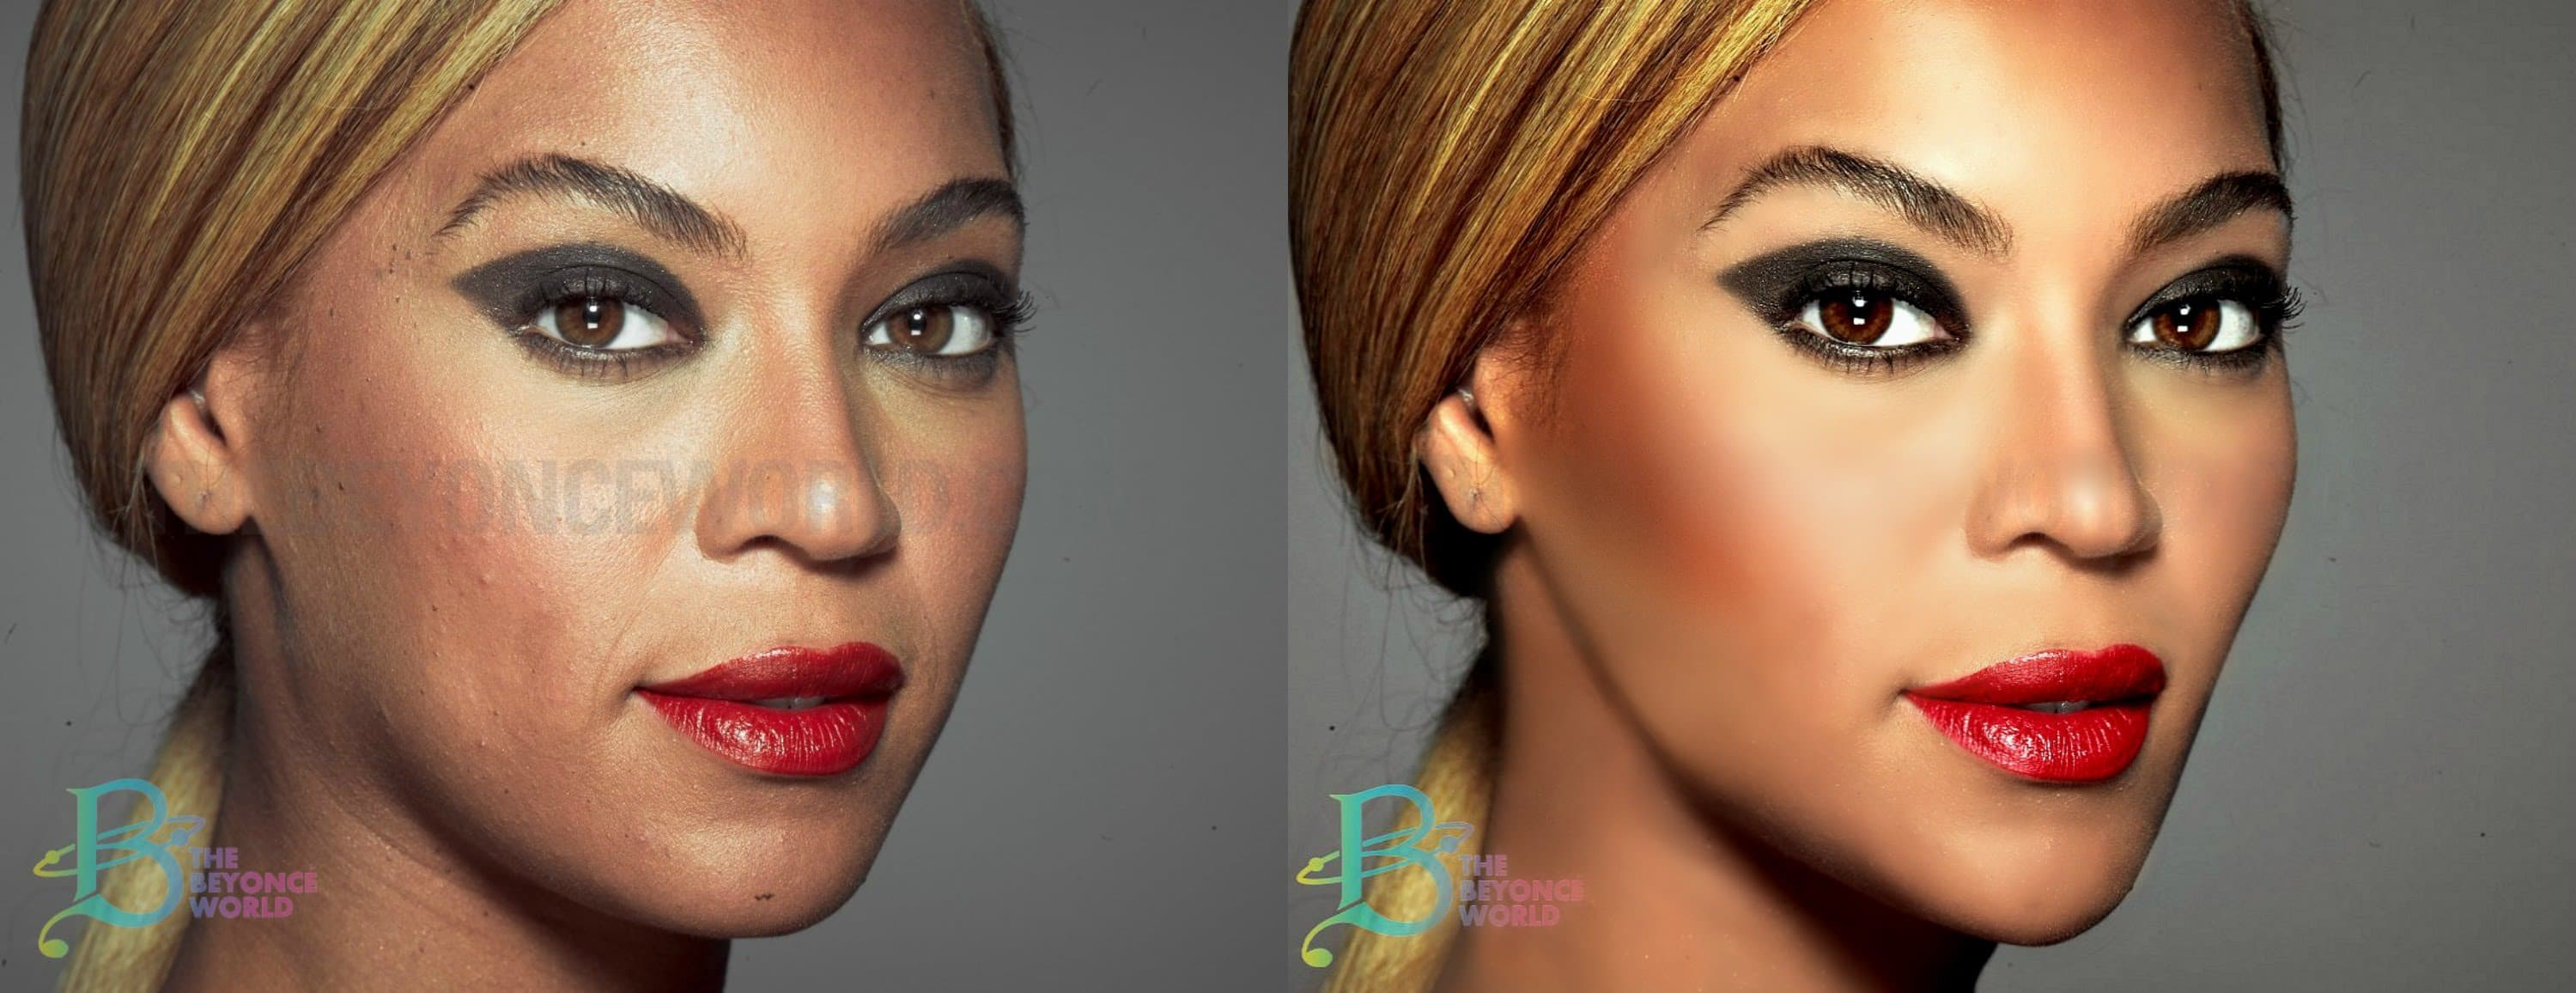 Models Plastic Surgery Before And After photo - 1